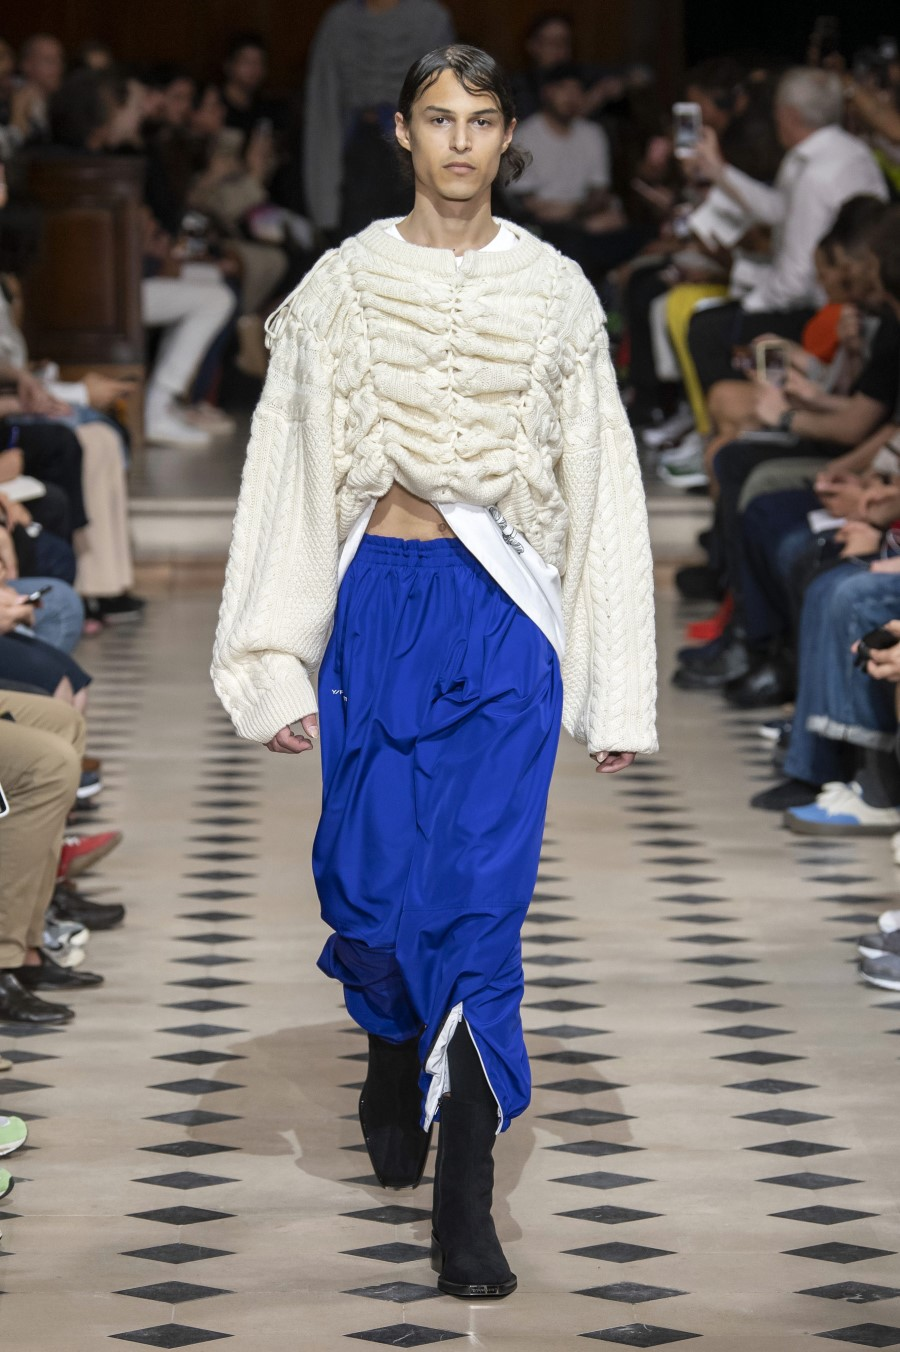 Y/Project - Printemps-Été 2020 - Paris Fashion Week